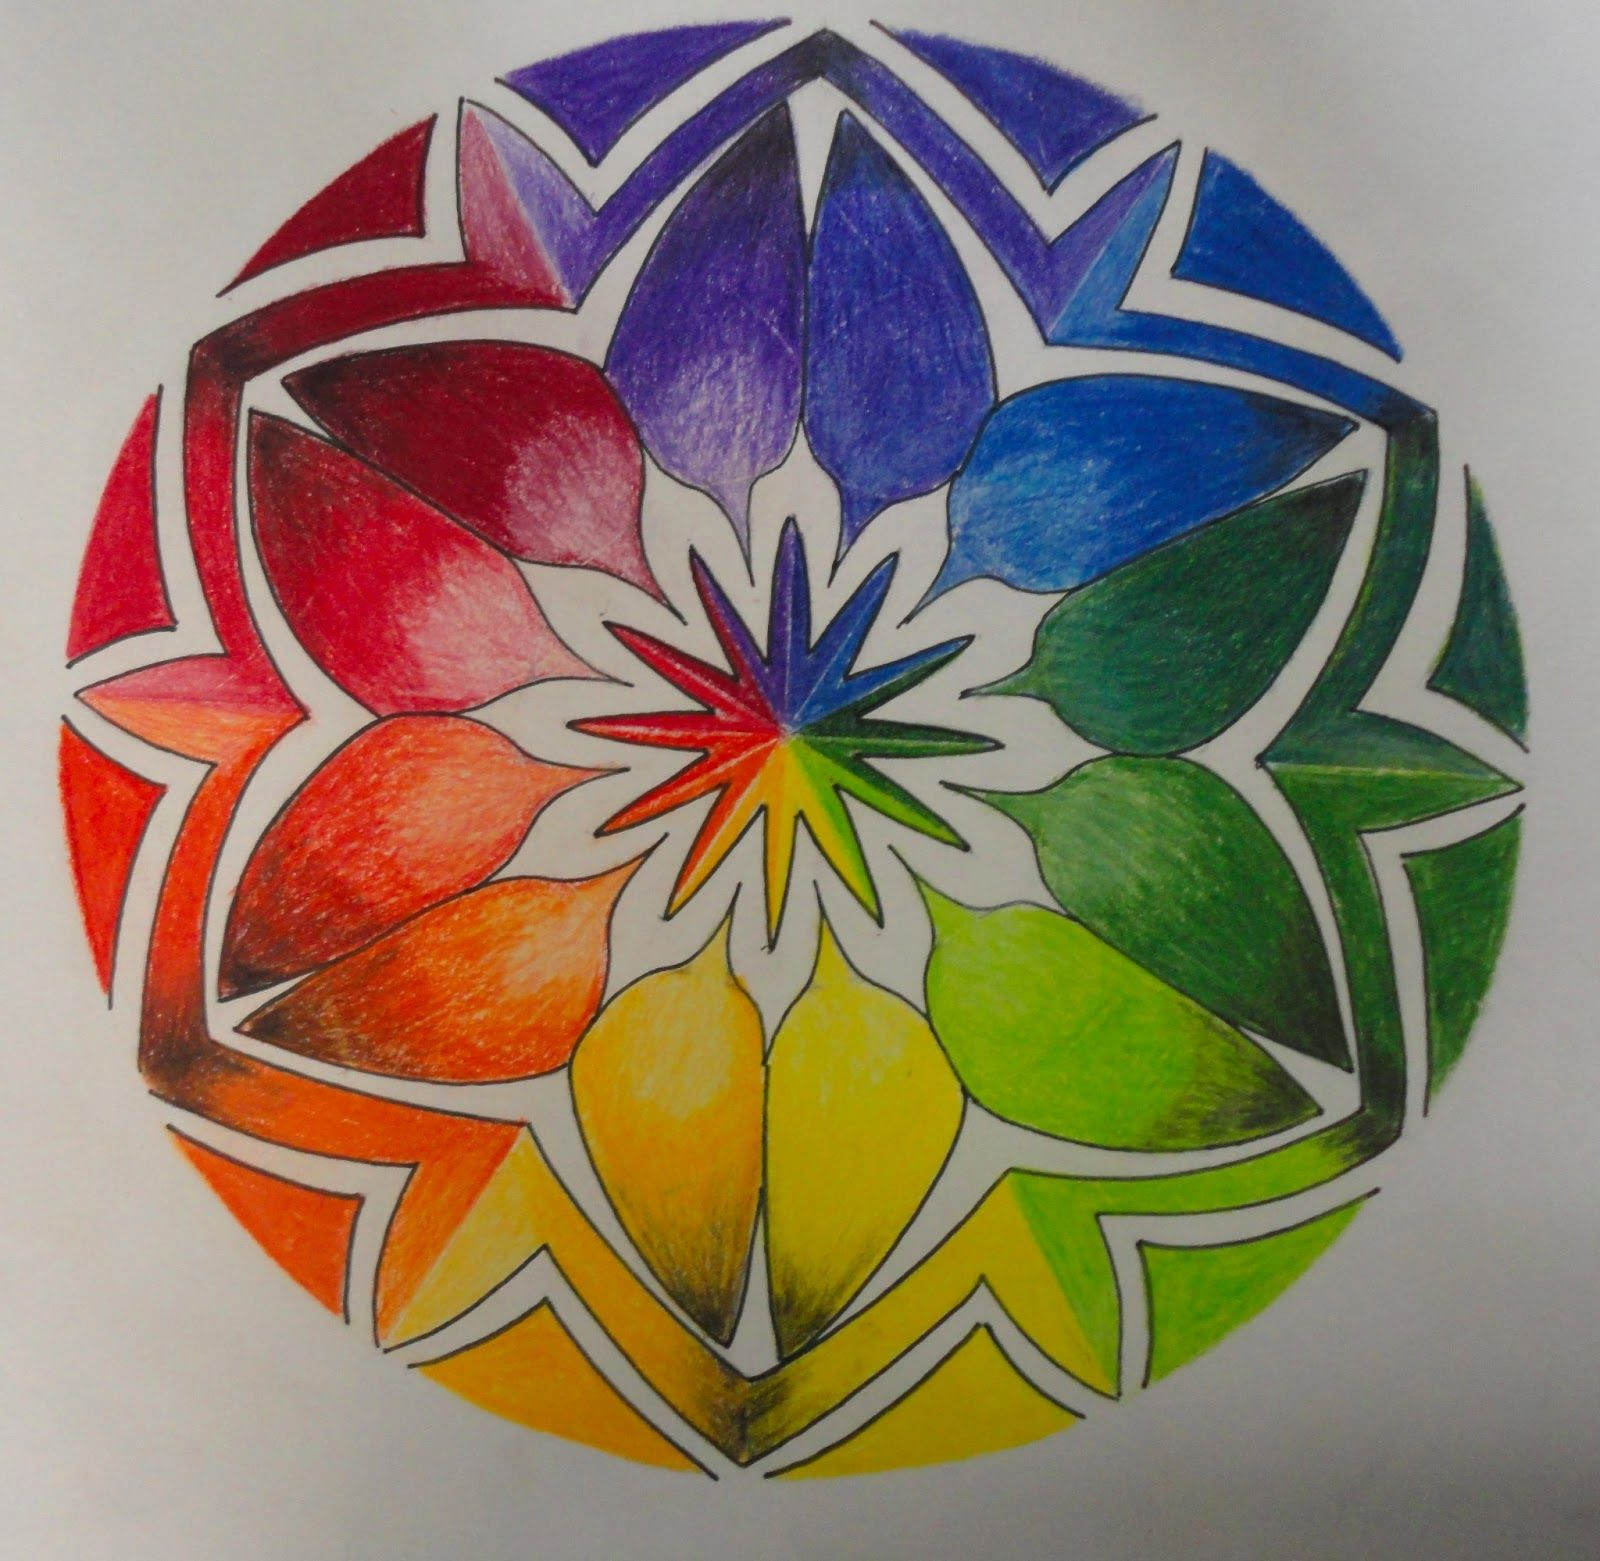 Color theory online games - Mandala Color Wheel Google Search